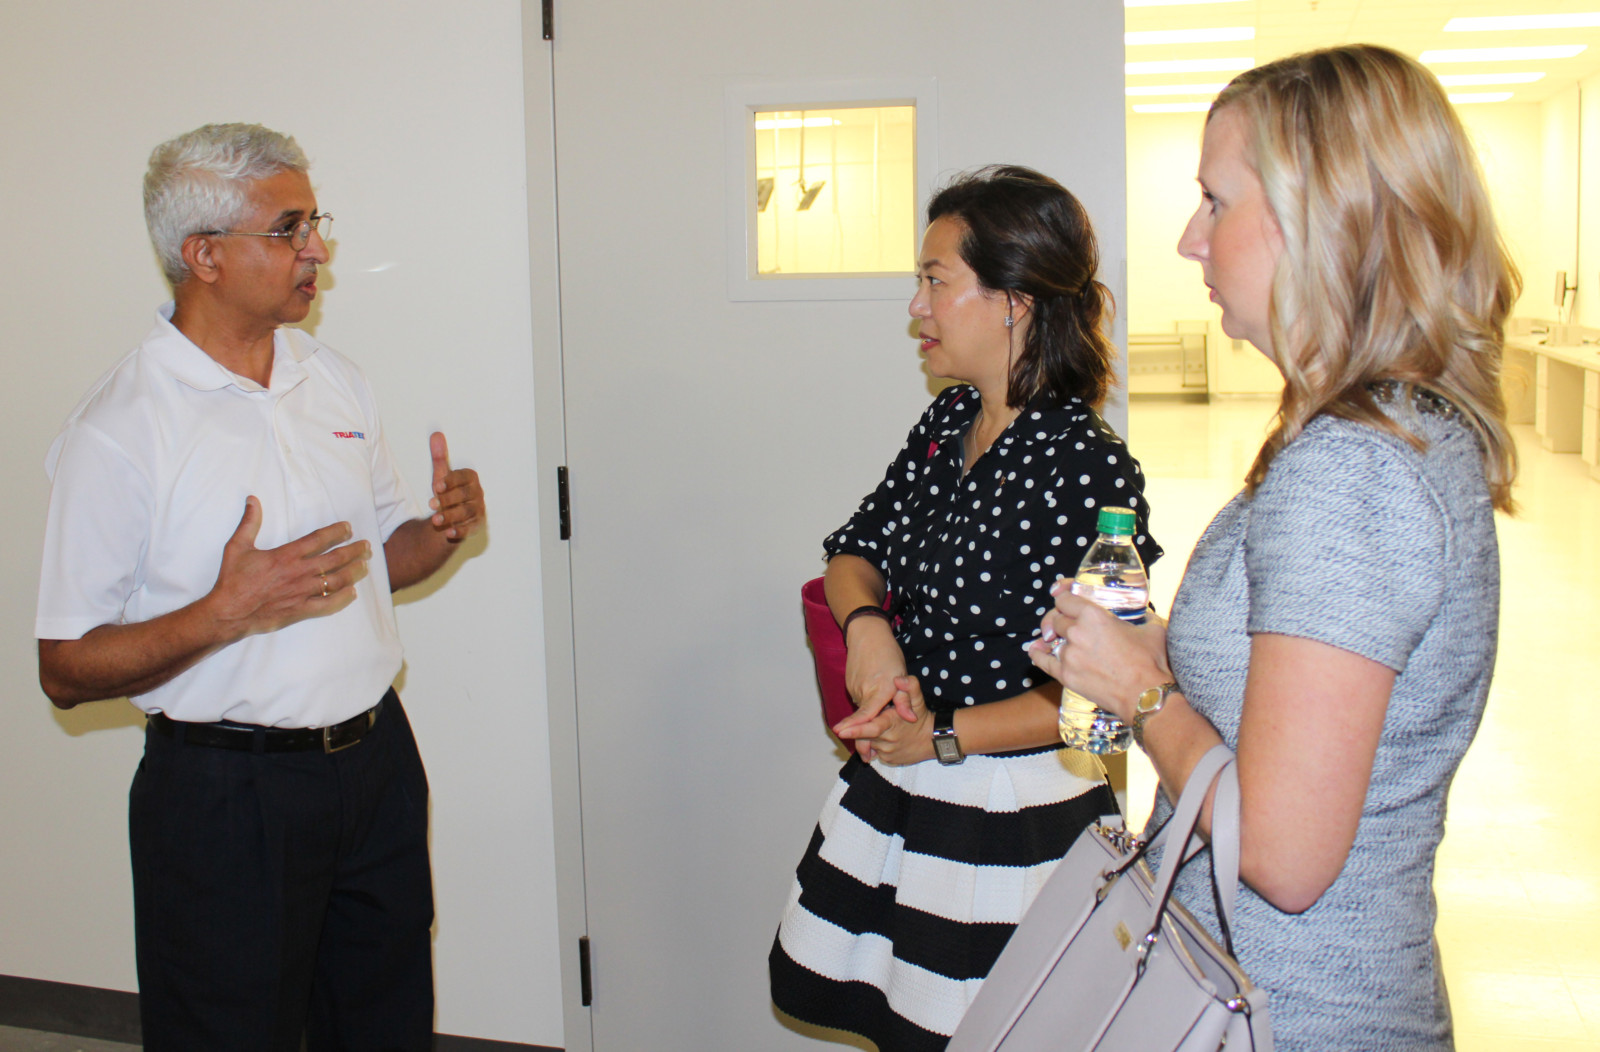 Prashant discusses manufacturing processes with representatives from the Chamber of Commerce